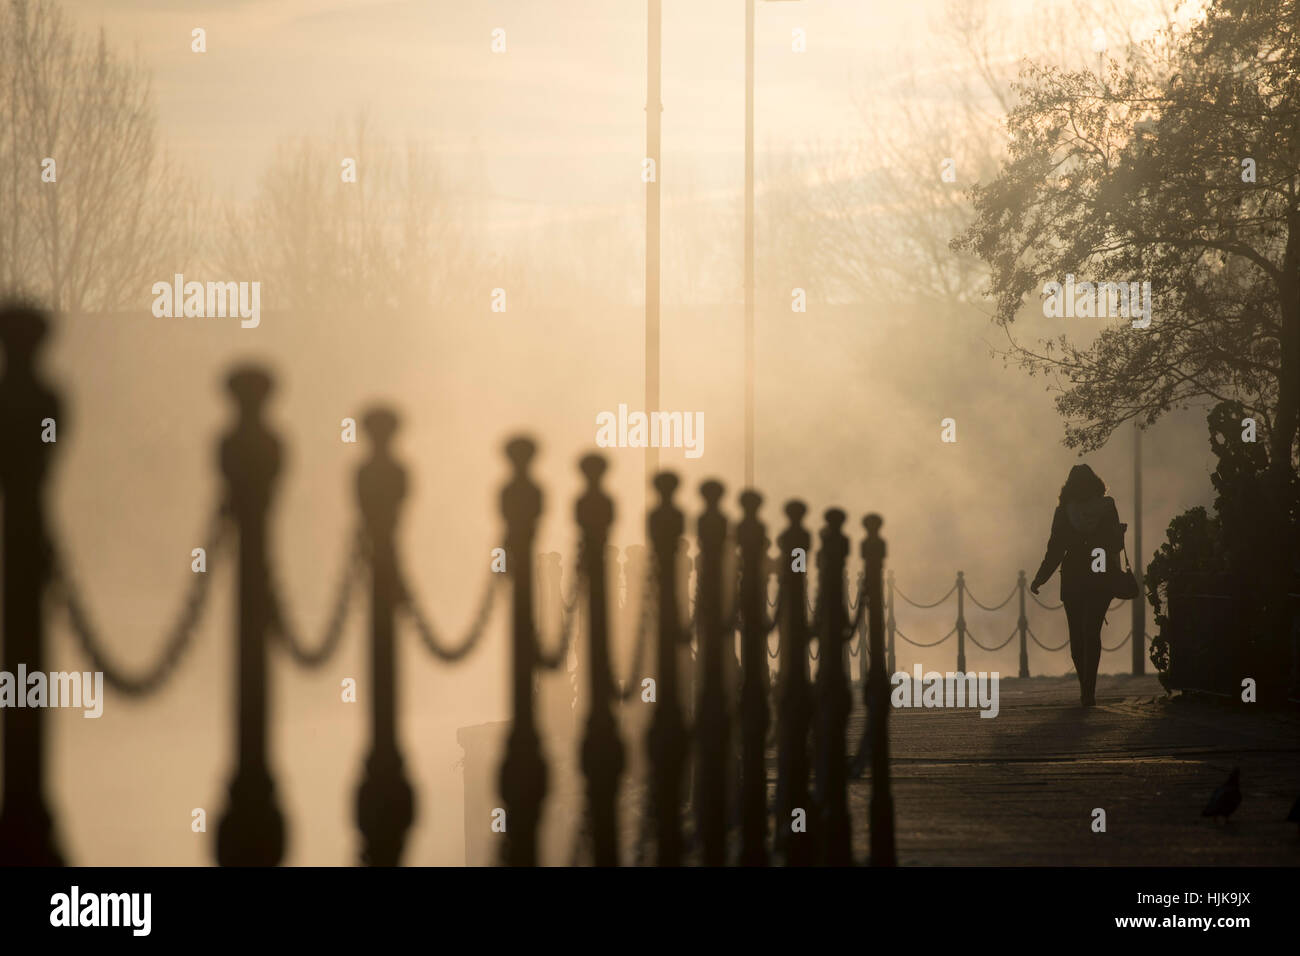 A person walks along the towpath at dawn, by the River Lea in London - Stock Image